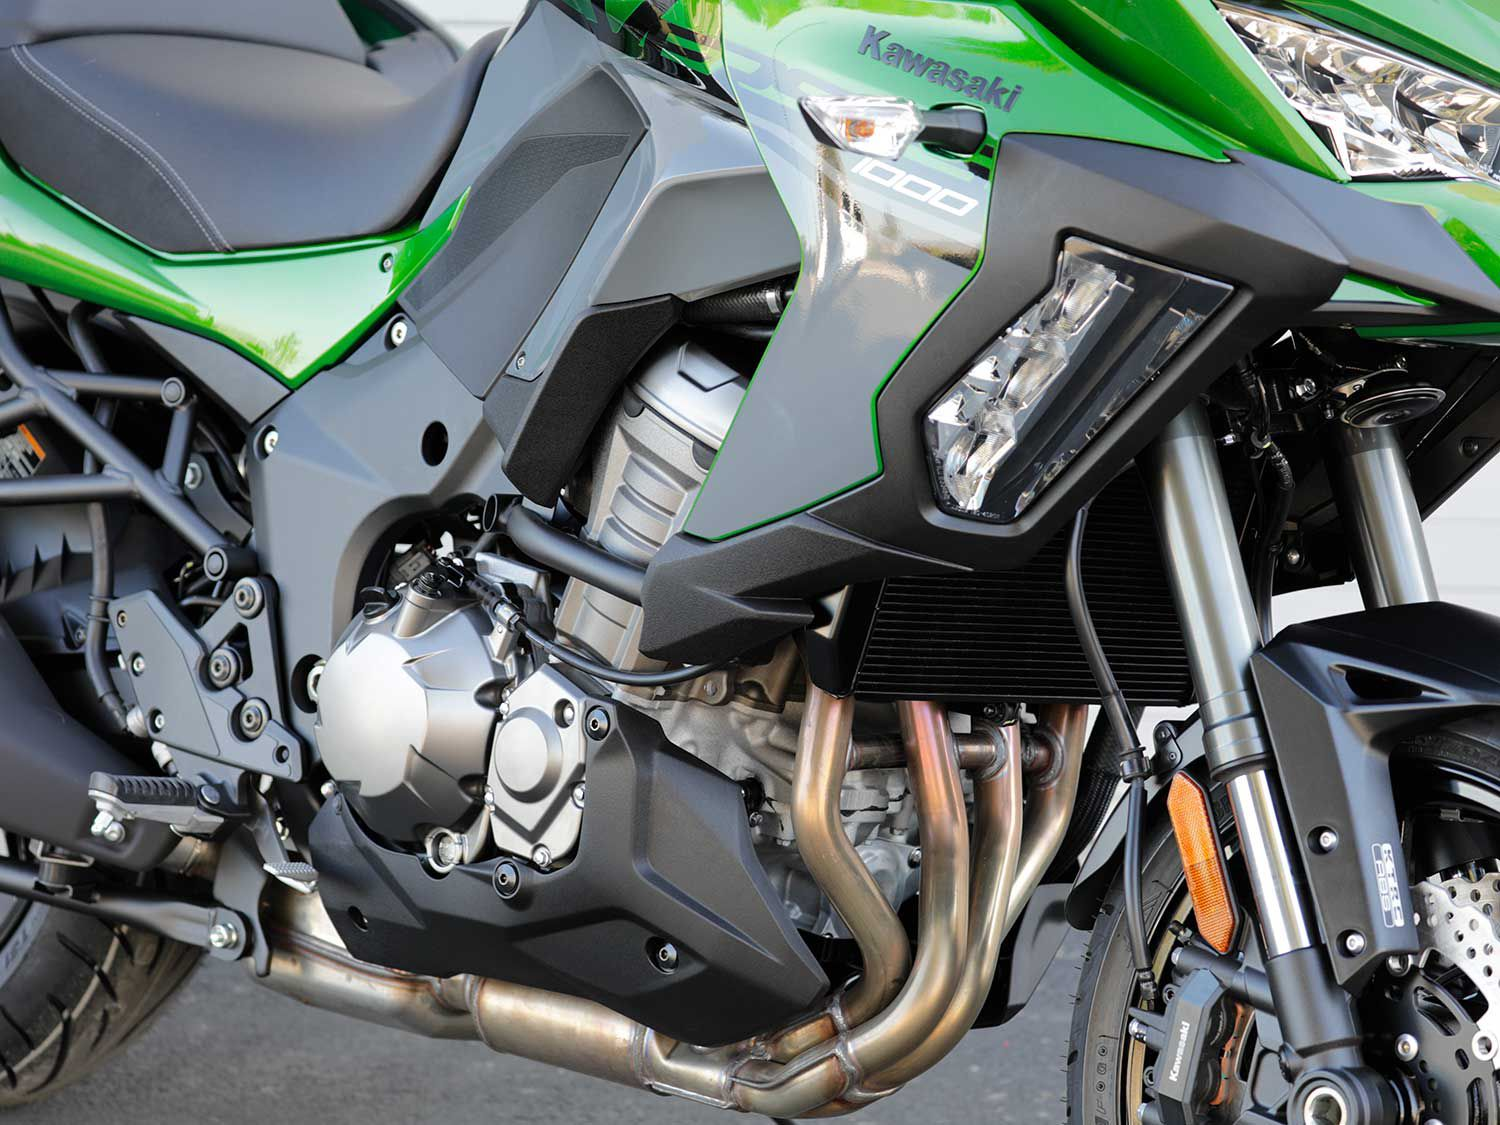 The Versys 1000 is powered by Kawasaki's tried-and-true 1,043cc inline-four. The engine has been retrofitted with exquisitely calibrated ride-by-wire throttle control. This enables multiple engine/throttle response maps and cruise control.